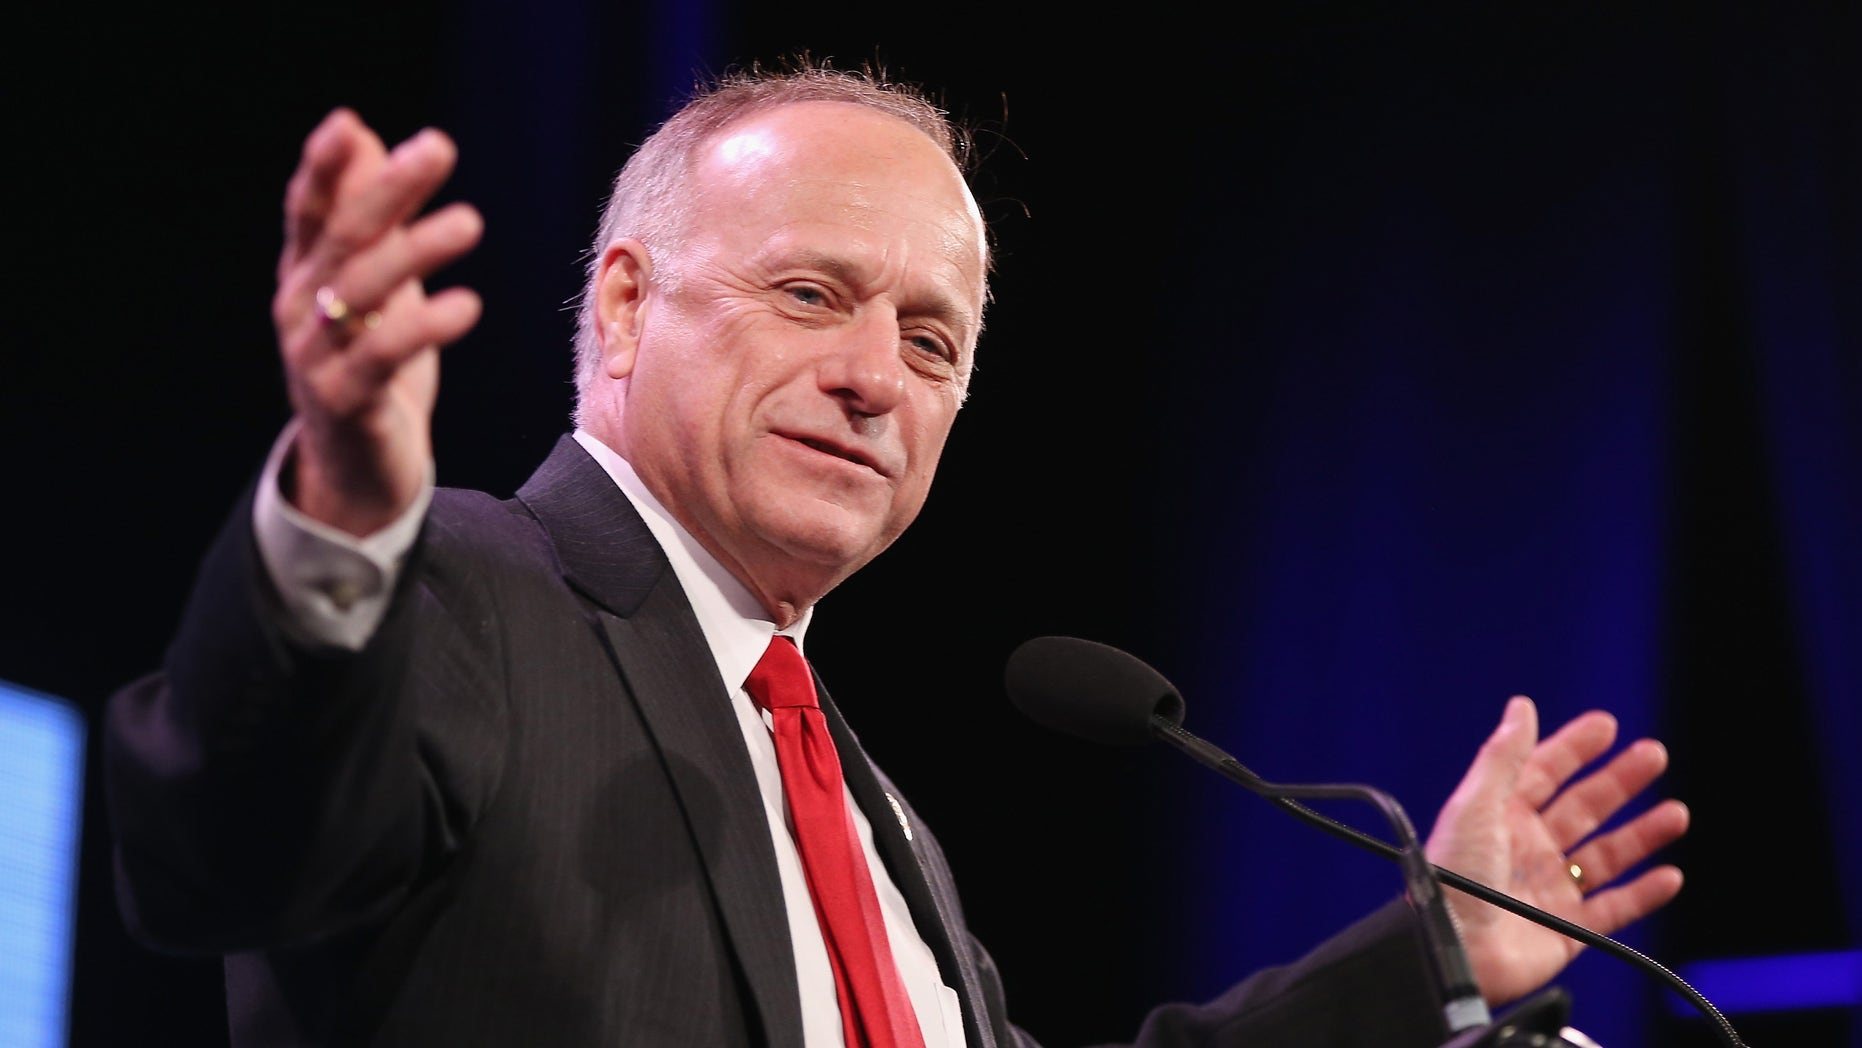 DES MOINES, IA - JANUARY 24:  U.S. Representative Steve King (R-IA) speaks to guests  at the Iowa Freedom Summit on January 24, 2015 in Des Moines, Iowa. The summit is hosting a group of potential 2016 Republican presidential candidates to discuss core conservative principles ahead of the January 2016 Iowa Caucuses.  (Photo by Scott Olson/Getty Images)